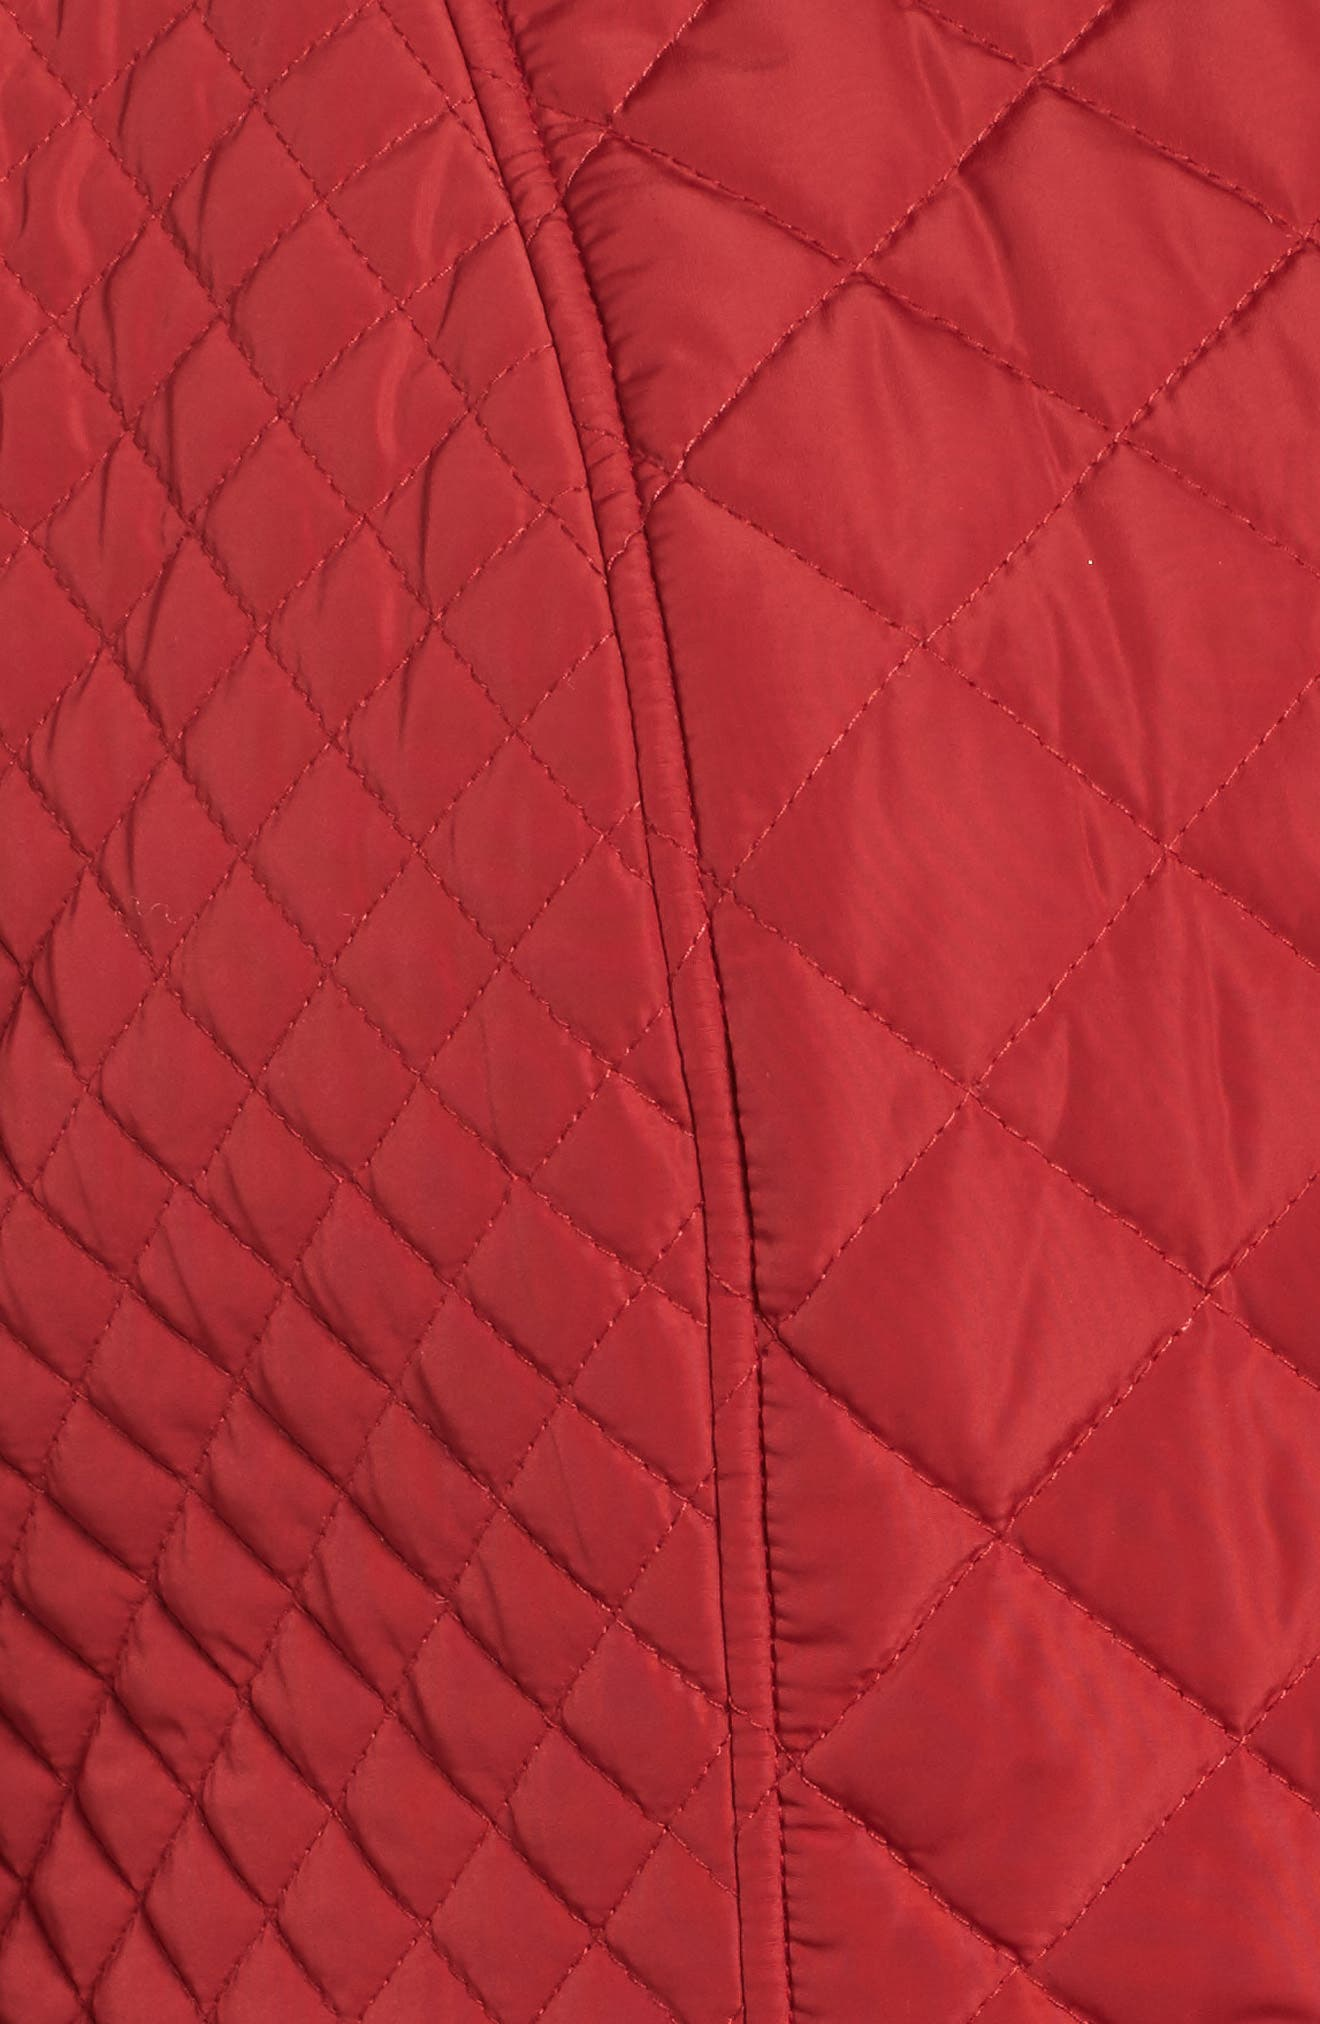 Print Collar Quilted Jacket,                             Alternate thumbnail 5, color,                             Tomato Red